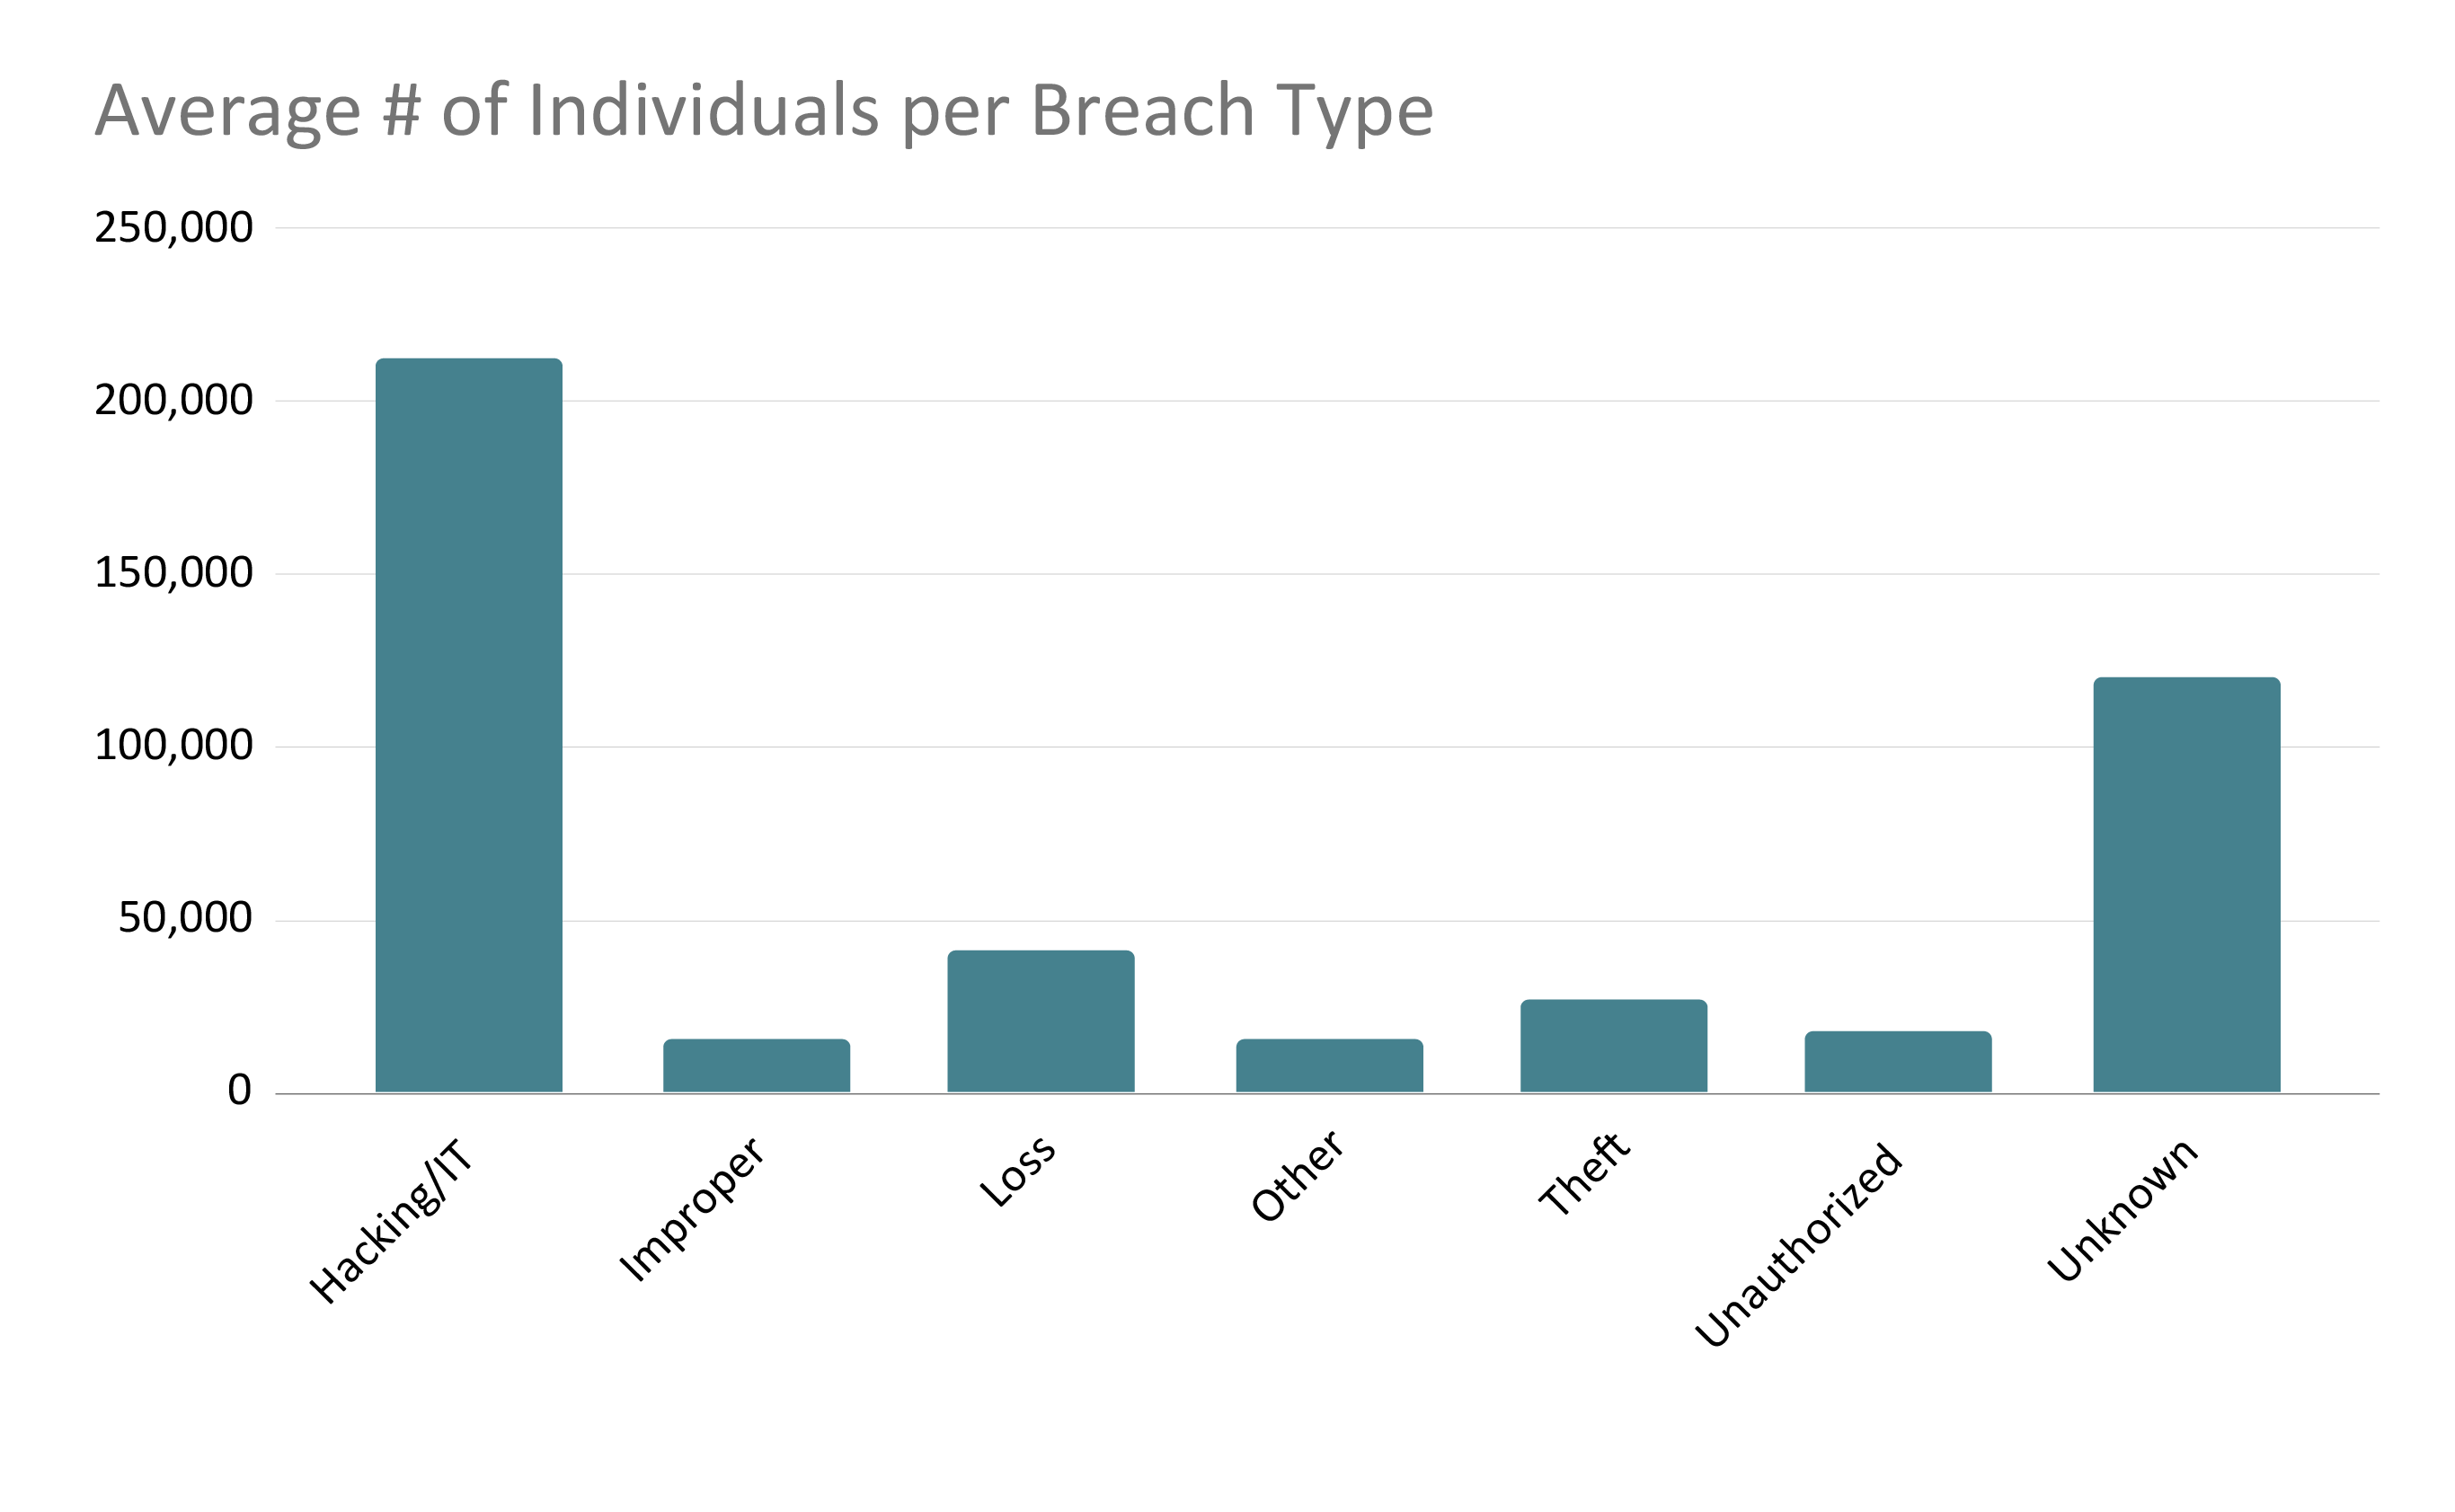 Average Number of Individuals by Breach Type